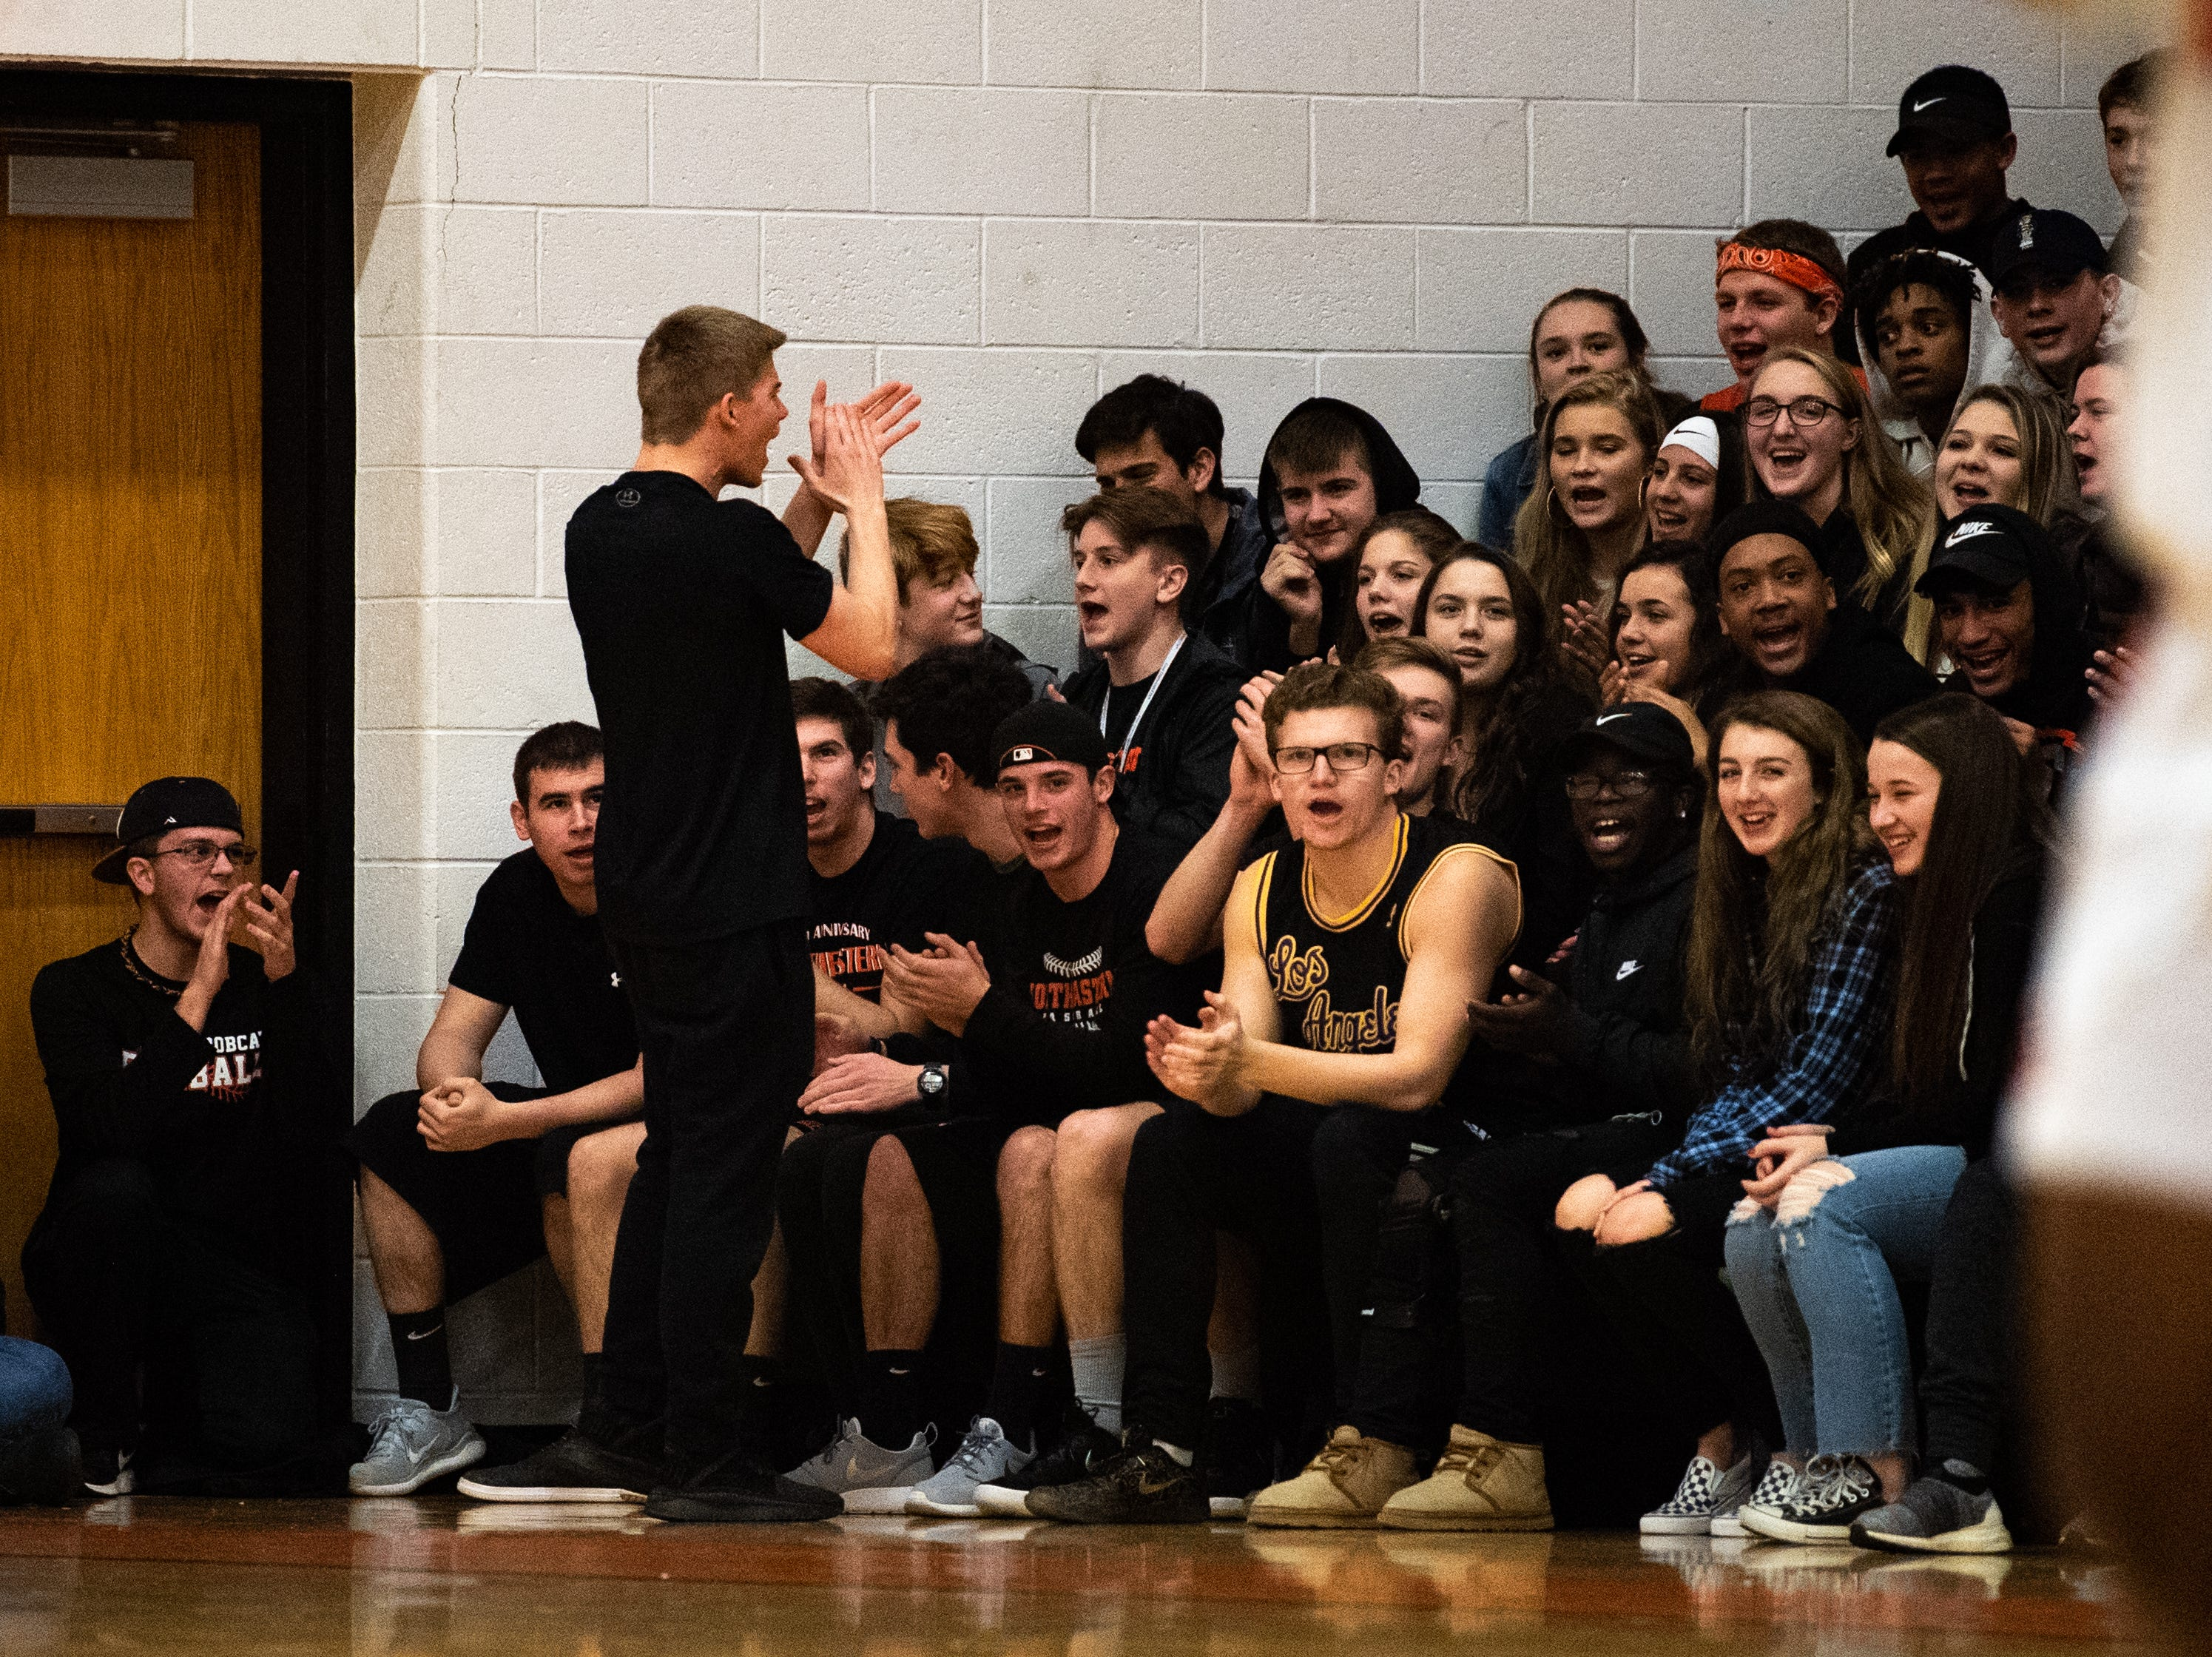 Northeastern's student section taunts Columbia during the YAIAA Boys' basketball game between Columbia and Northeastern at Northeastern High School, Friday, December 7, 2018. The Bobcats defeated the Crimson Tide 65 to 51.